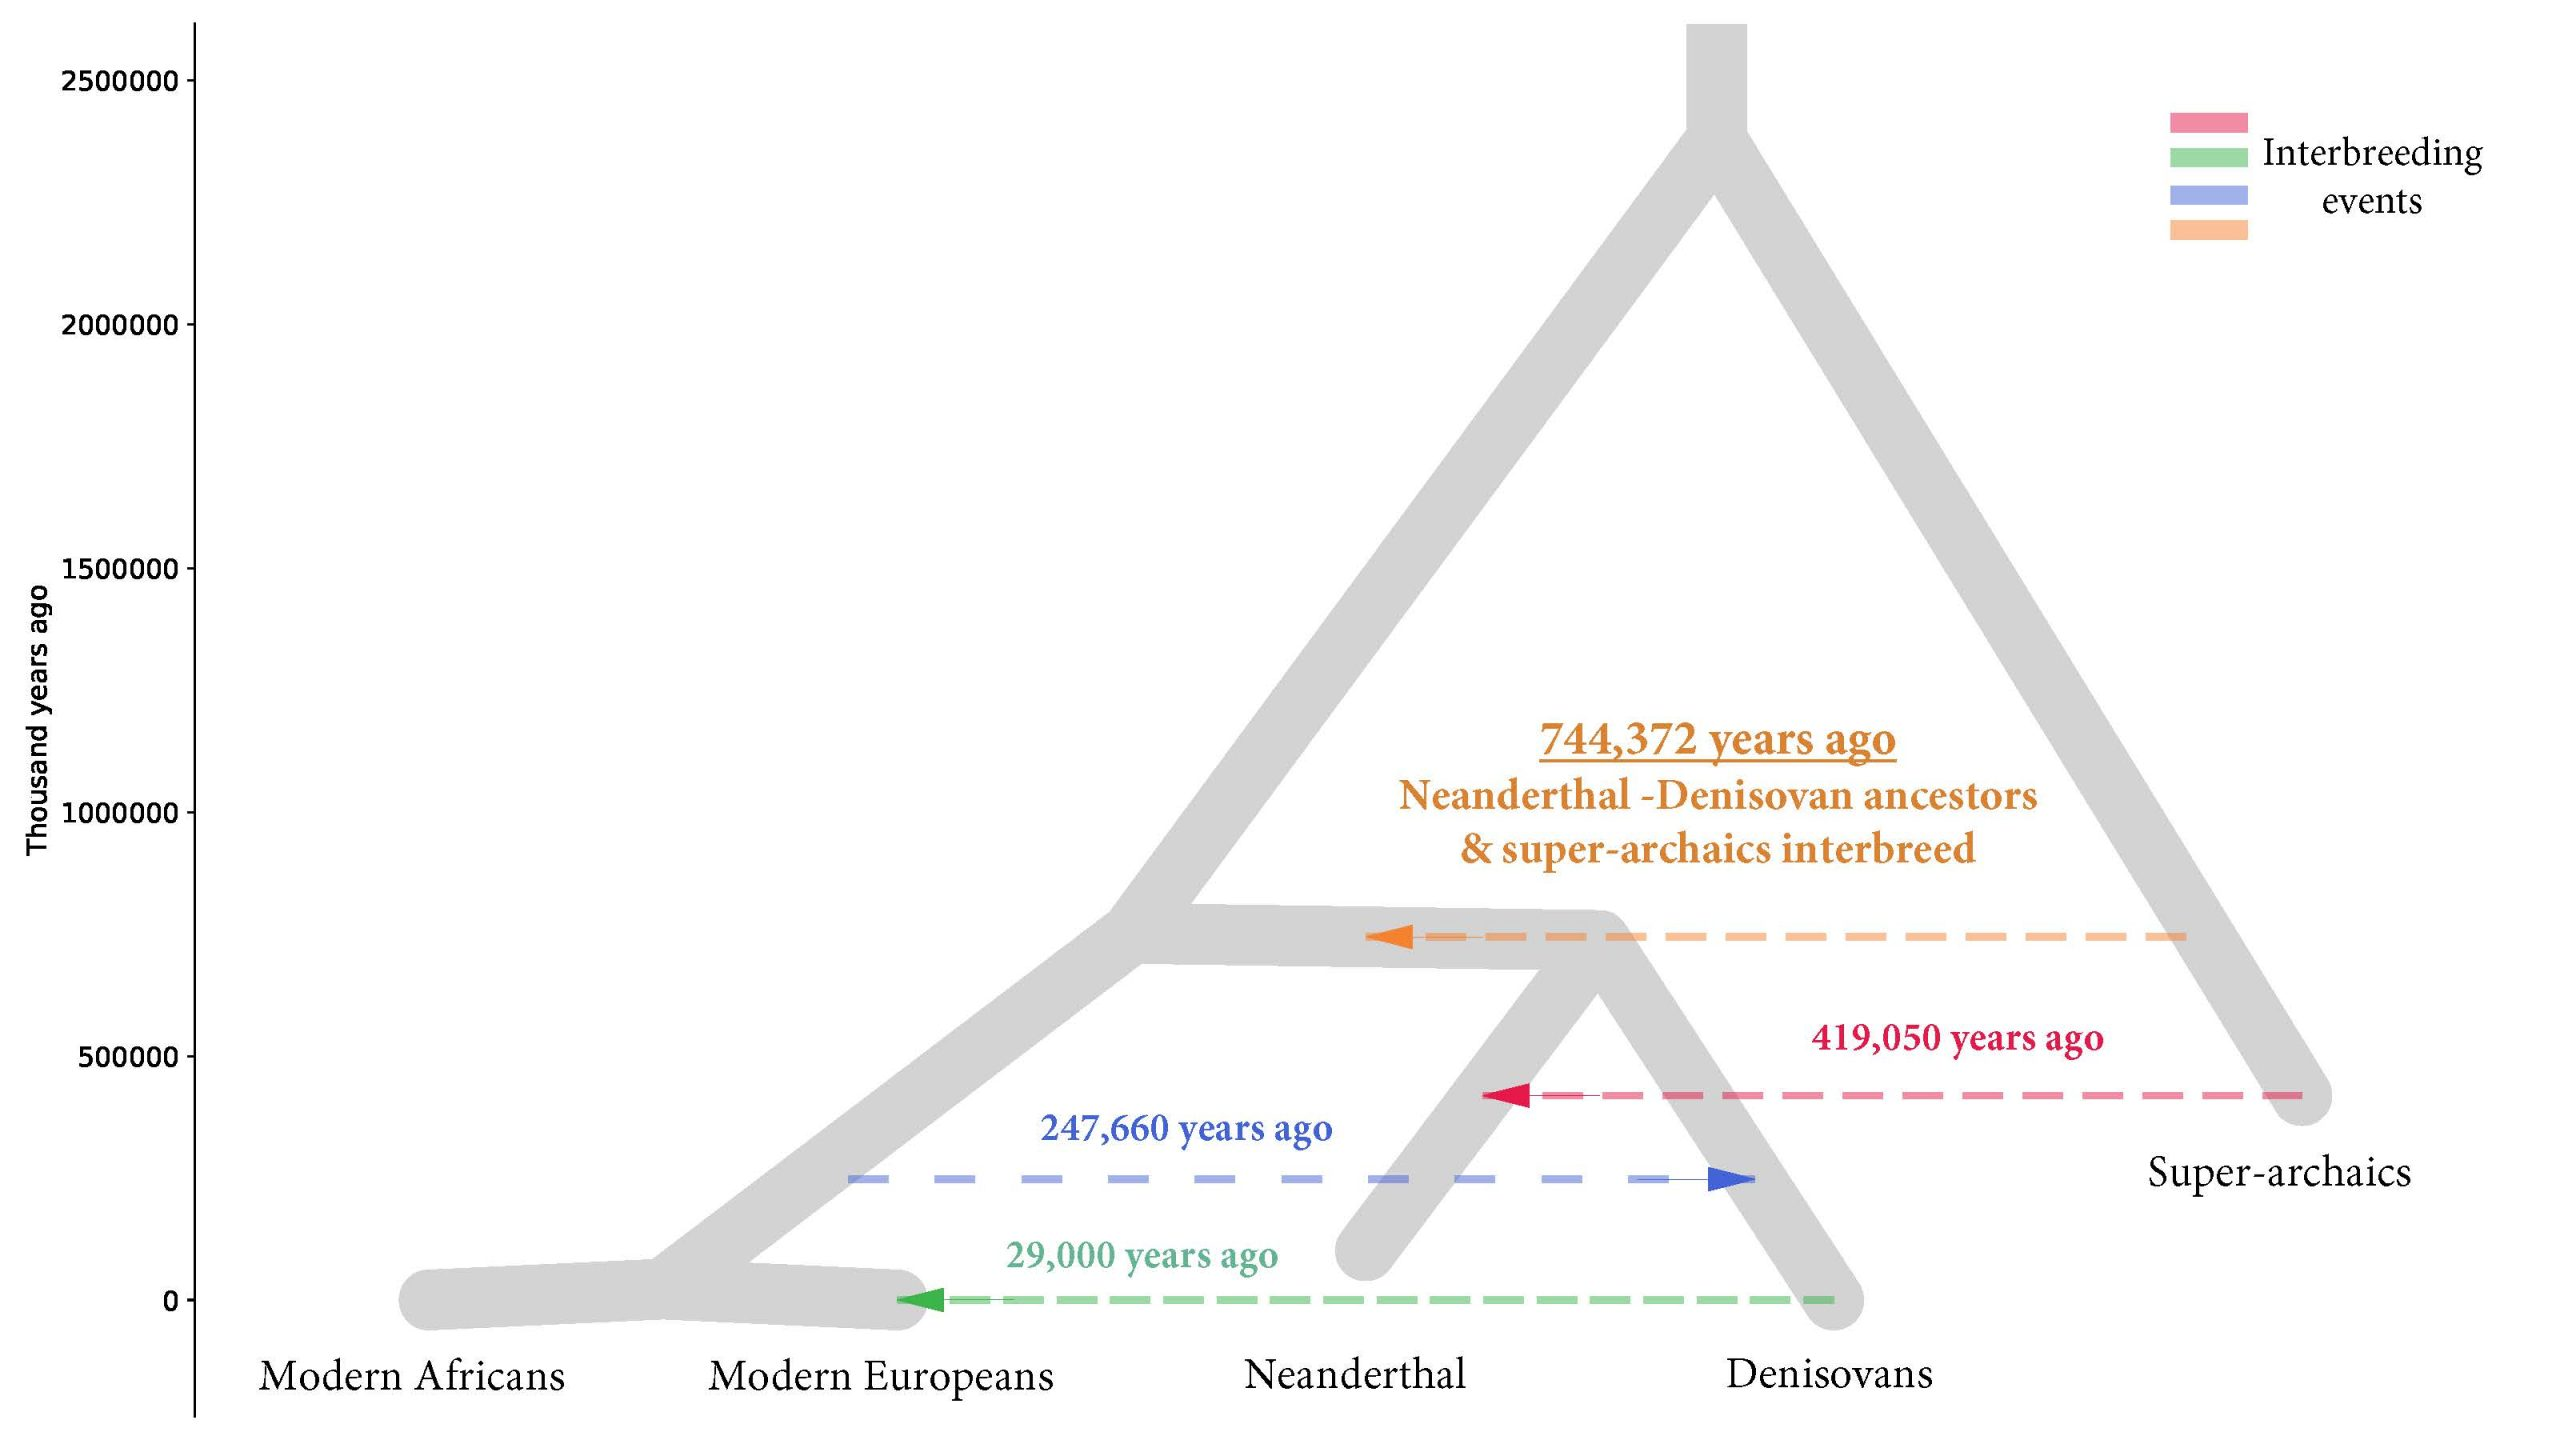 An evolutionary tree including four proposed episodes of gene flow. The previously unknown event 744,372 years ago (orange) suggests interbreeding occurred between super-archaics and Neanderthal-Denisovan ancestors in Eurasia.